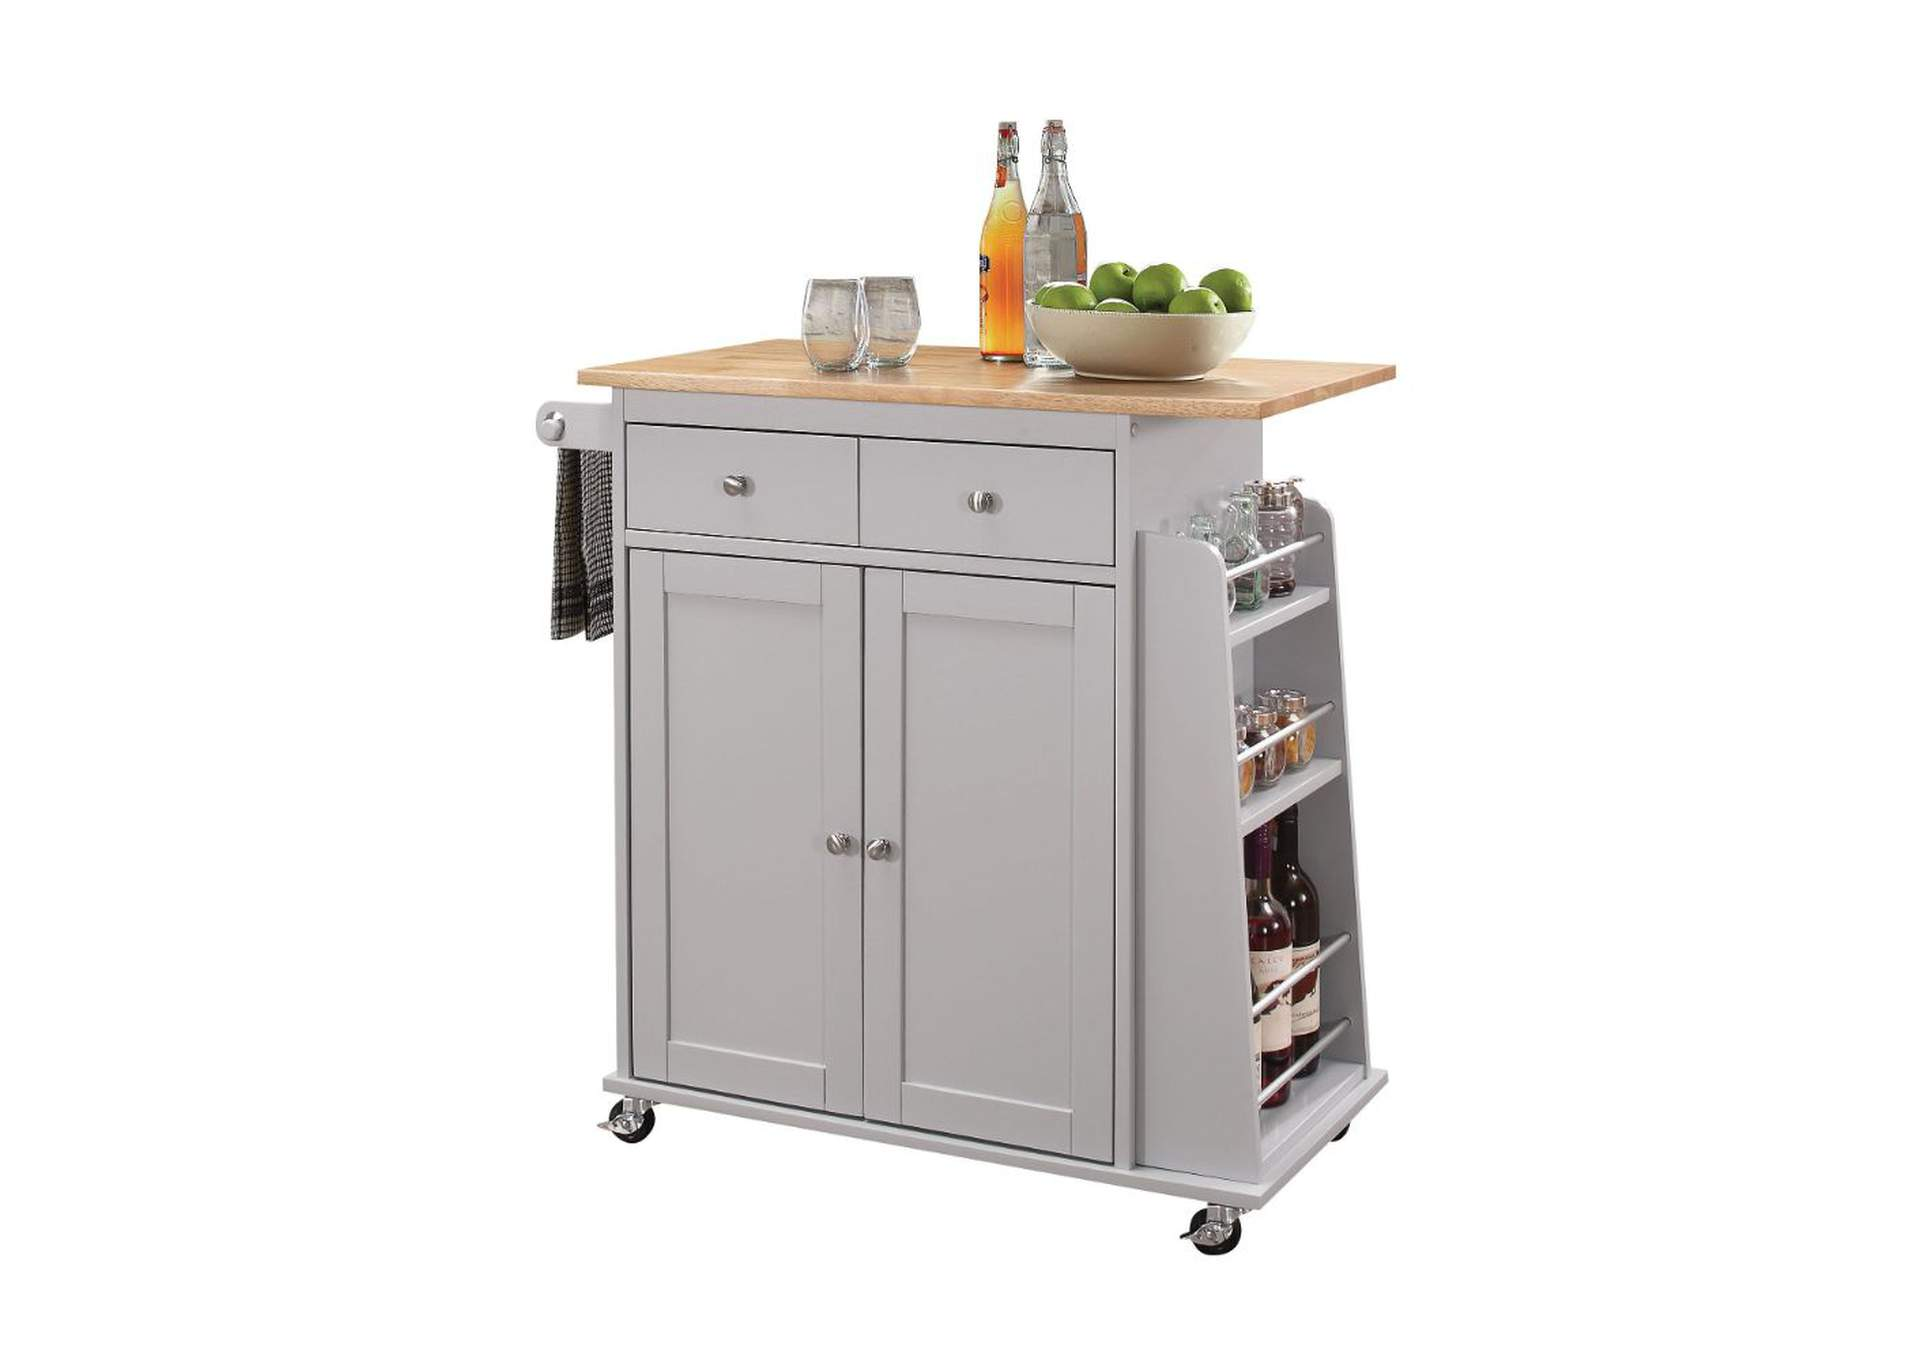 Tullarick Natural/Gray Kitchen Cart,Acme